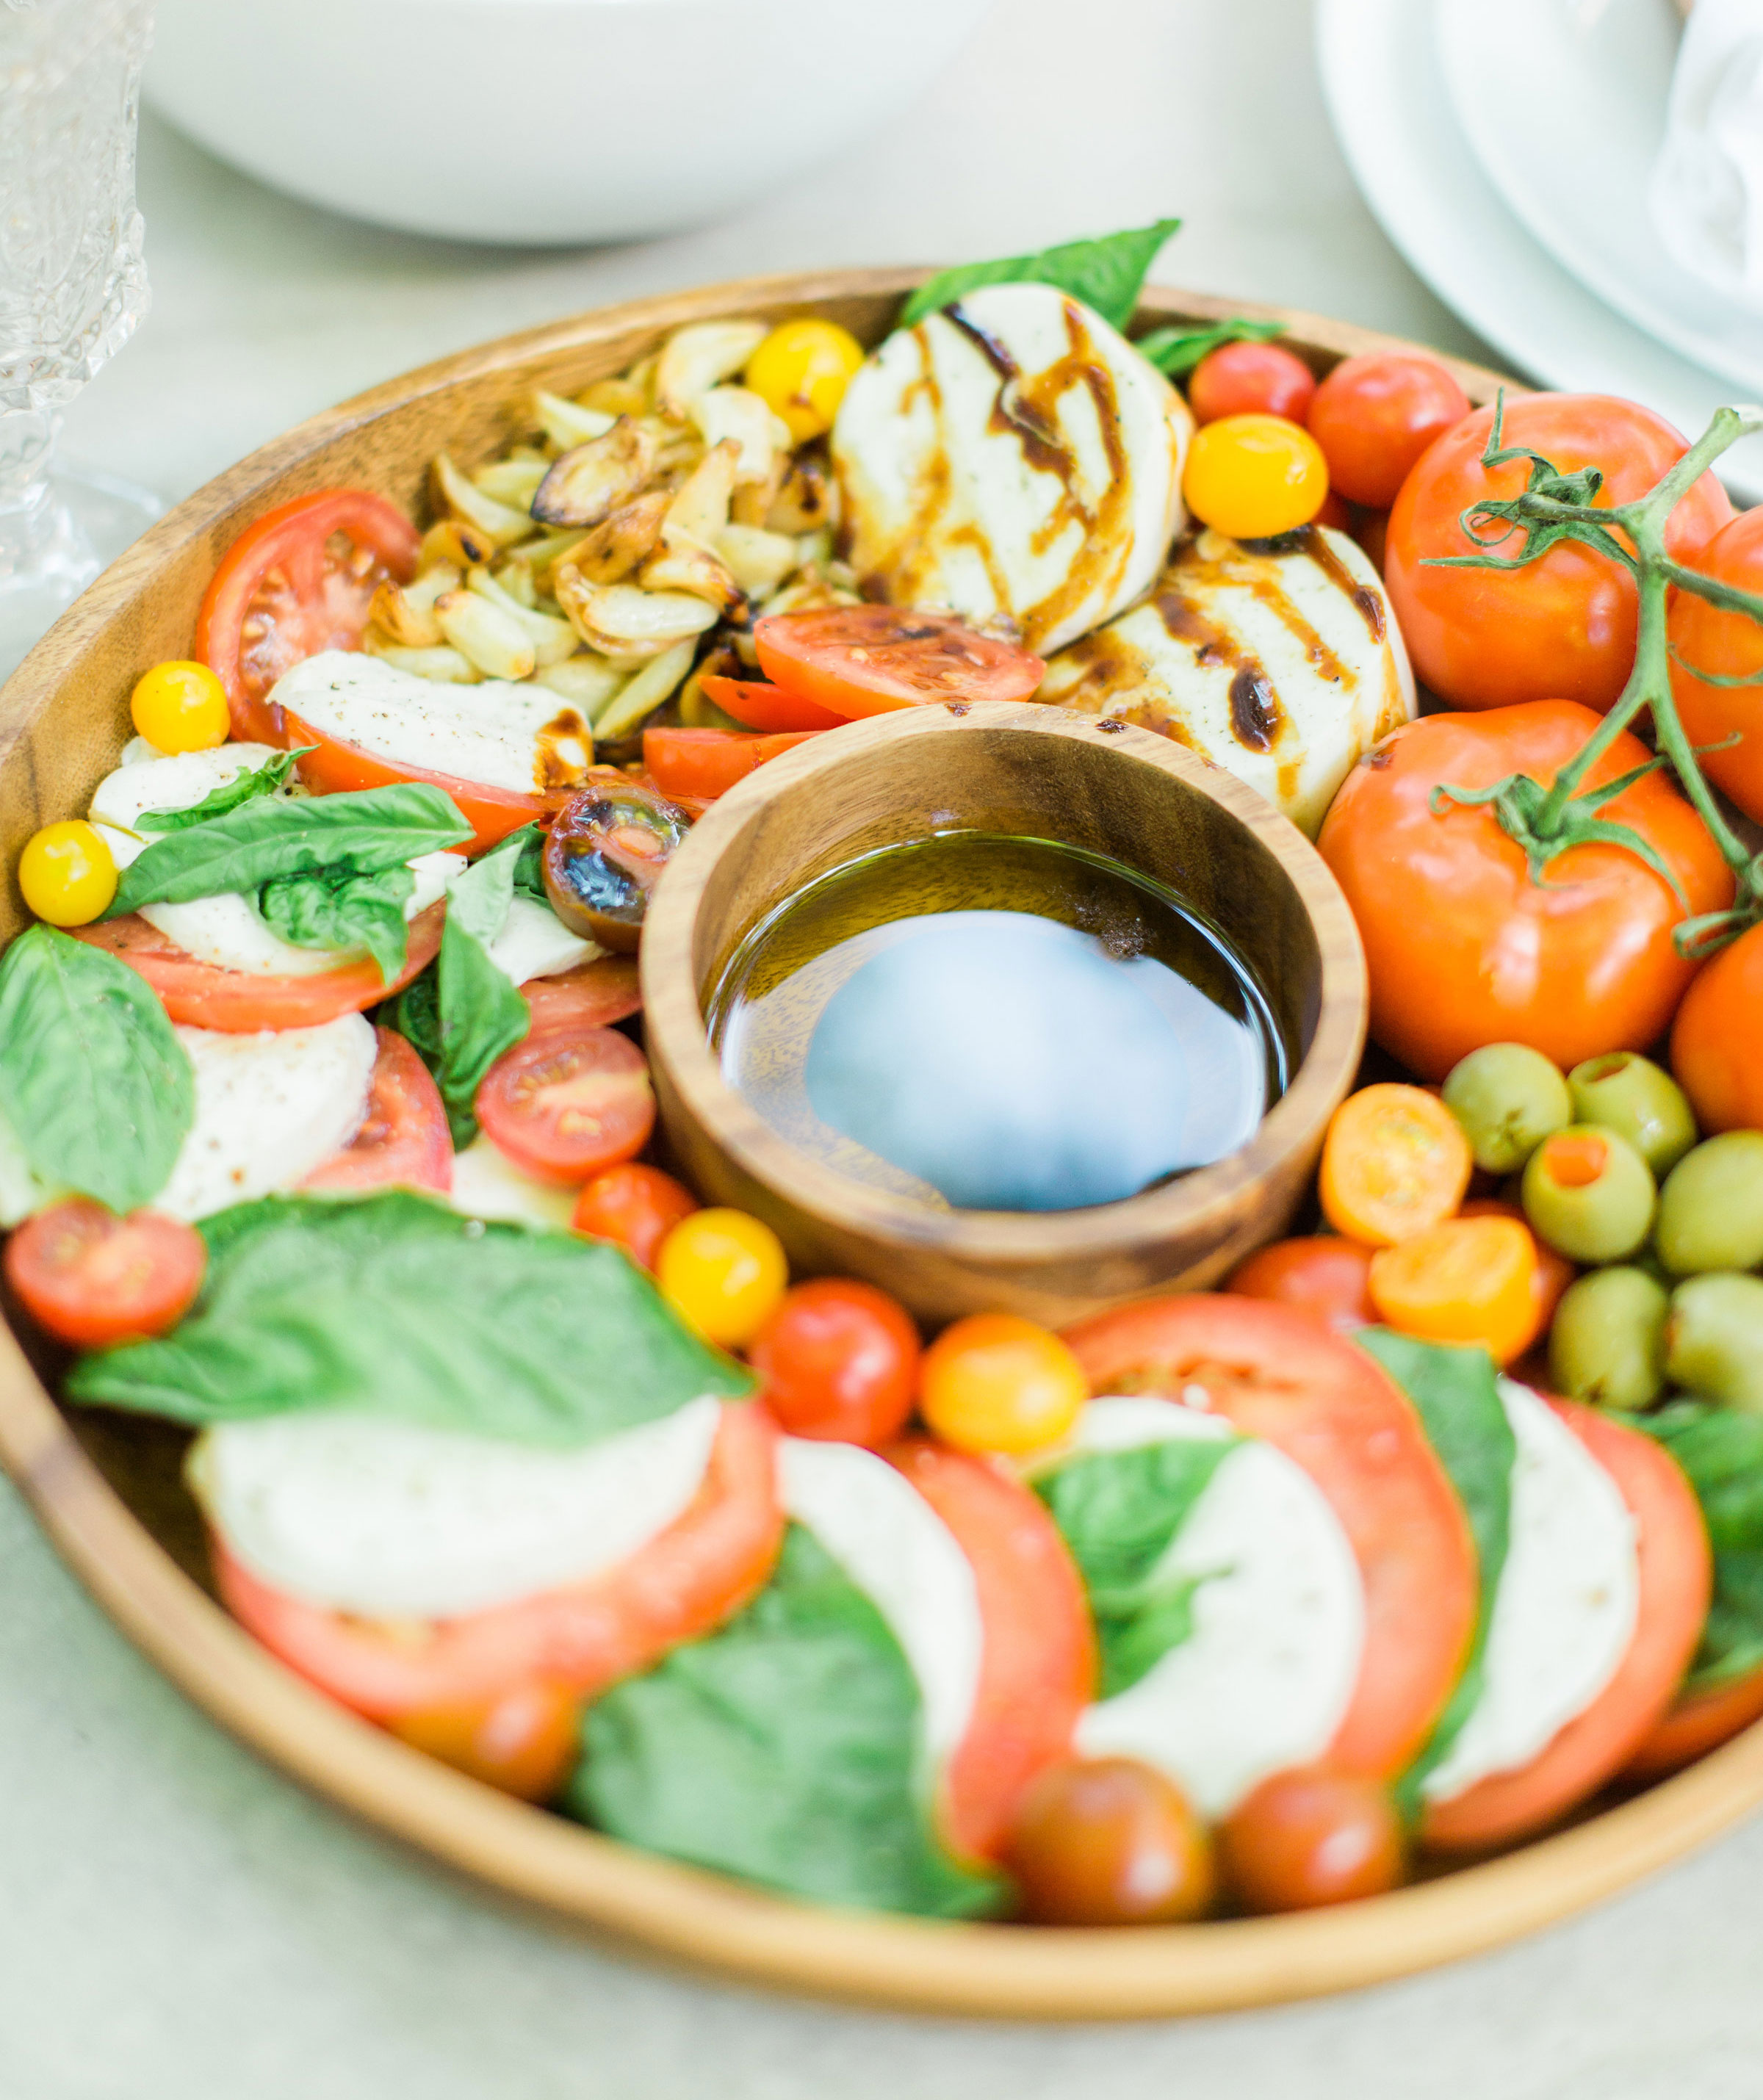 Tomatoes, fresh mozzarella, and basil drizzled with balsamic vinegar, or a sweet balsamic reduction, and olive oil; a caprese salad platter is so easy to make, looks beautiful and impressive (hello, wow factor!), and the magical combination of flavors is totally delicious. Click through for the recipe. #caprese #capresesalad #capresesaladplatter #appetizer #salad #partyfood #recipe #capreserecipe | glitterinc.com | @glitterinc